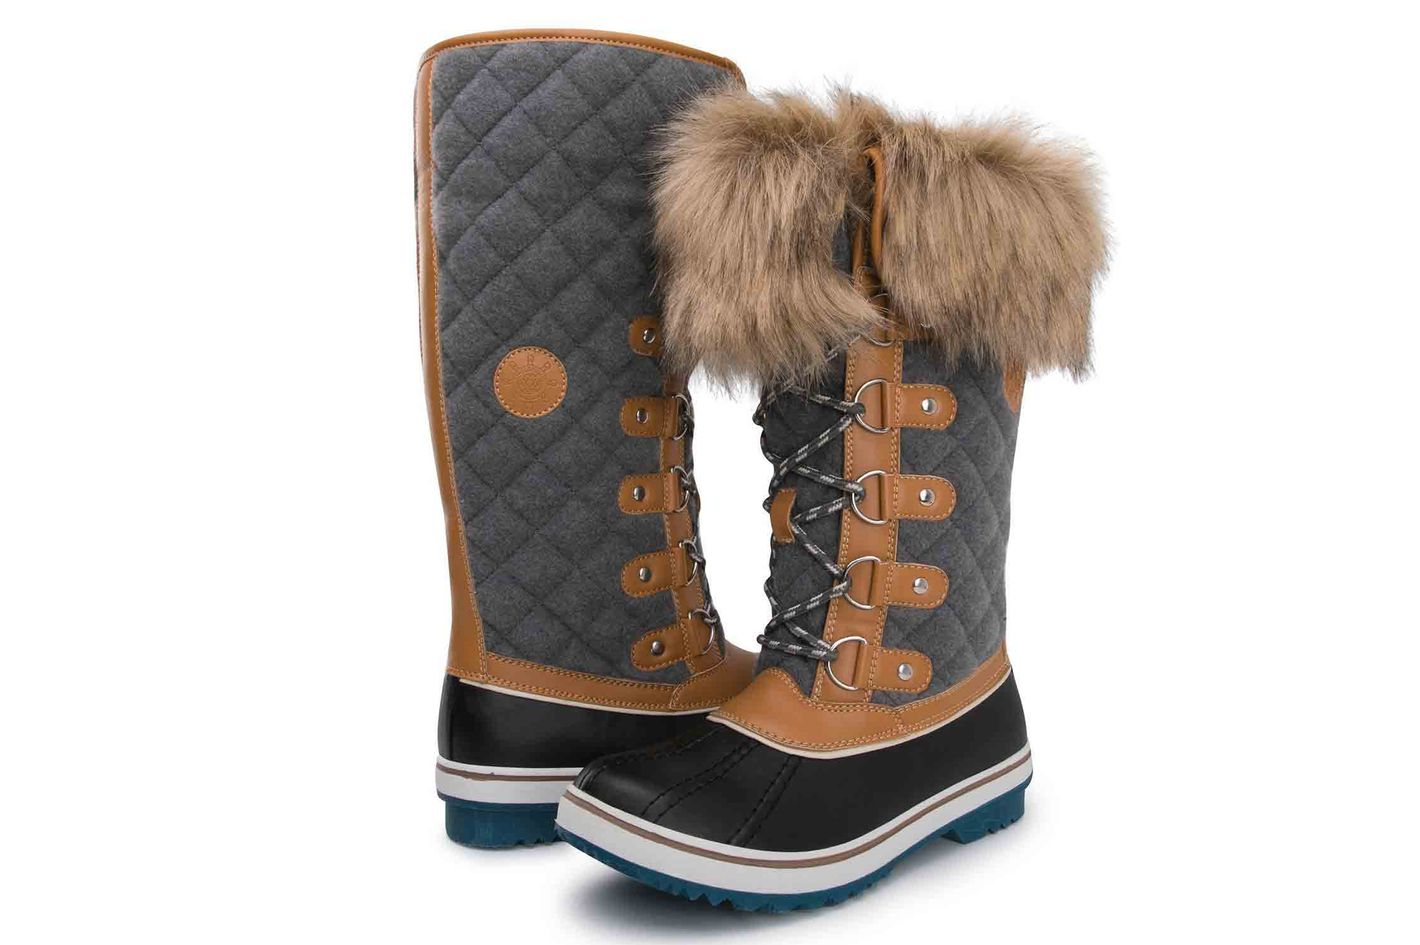 Best Winter Fashion Boots for Women 2018  Stylish Snow Boots d623368228